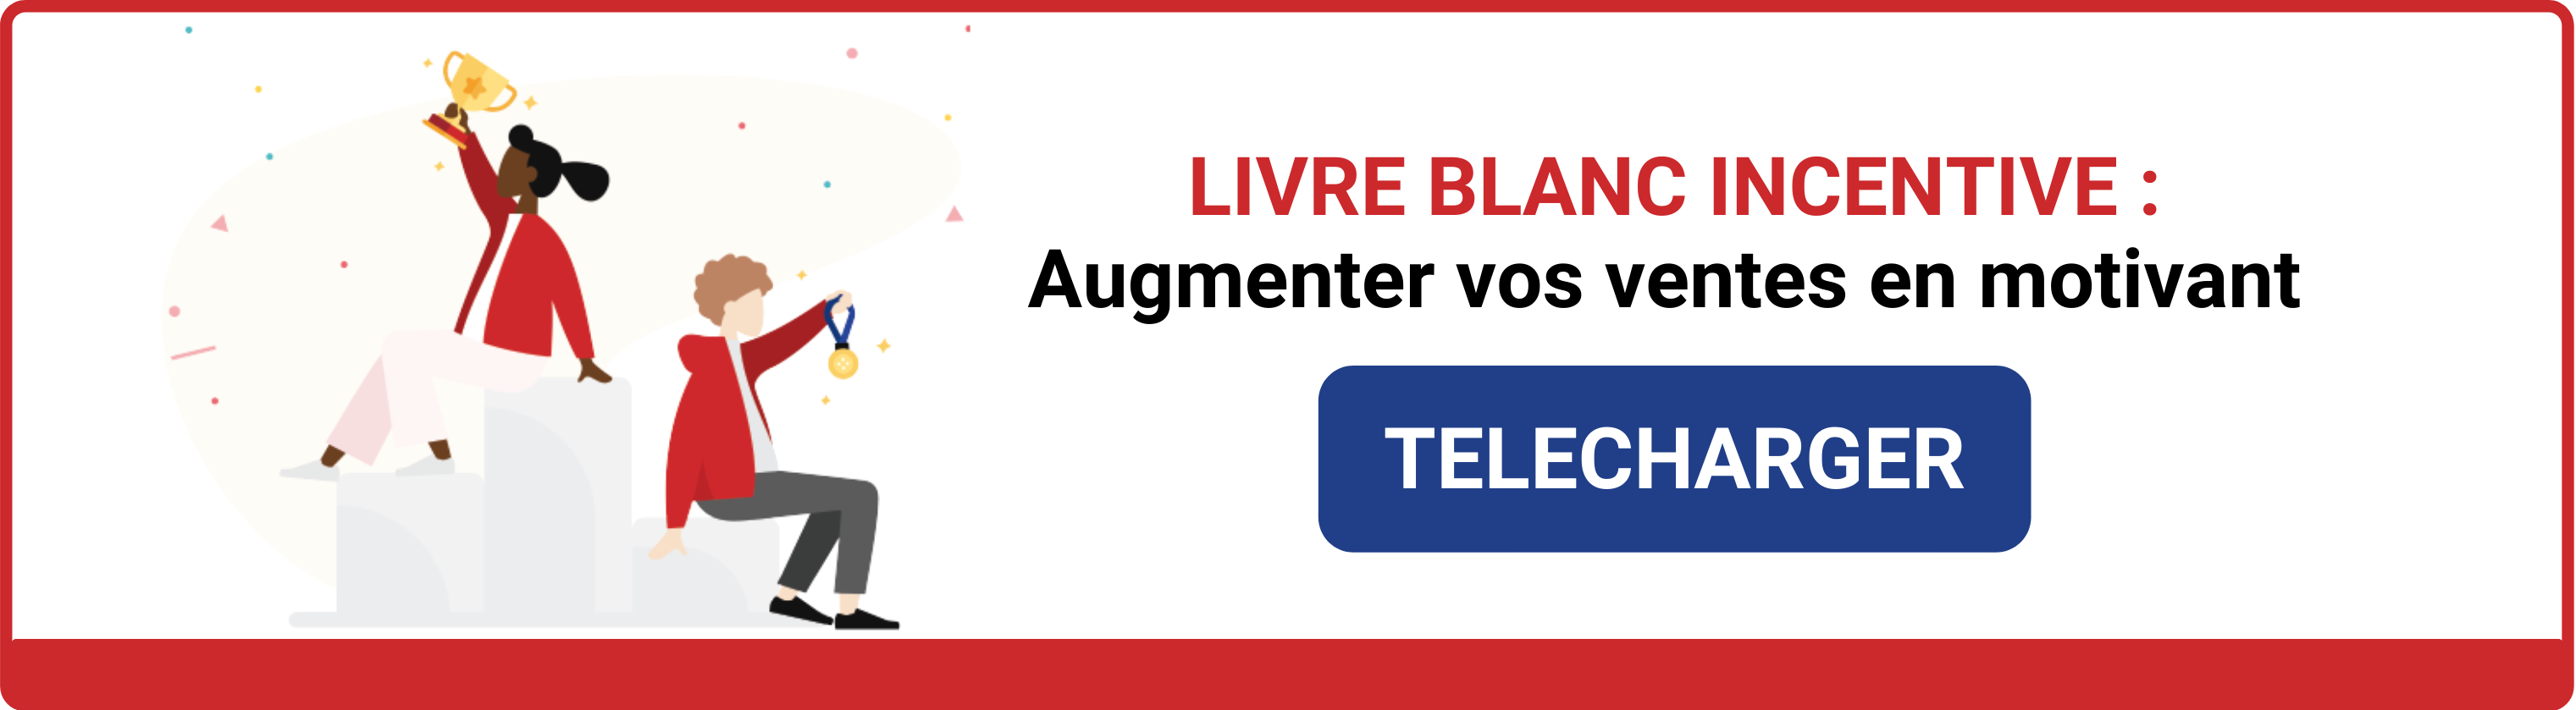 Telecharger-Livre-Blanc-Incentive